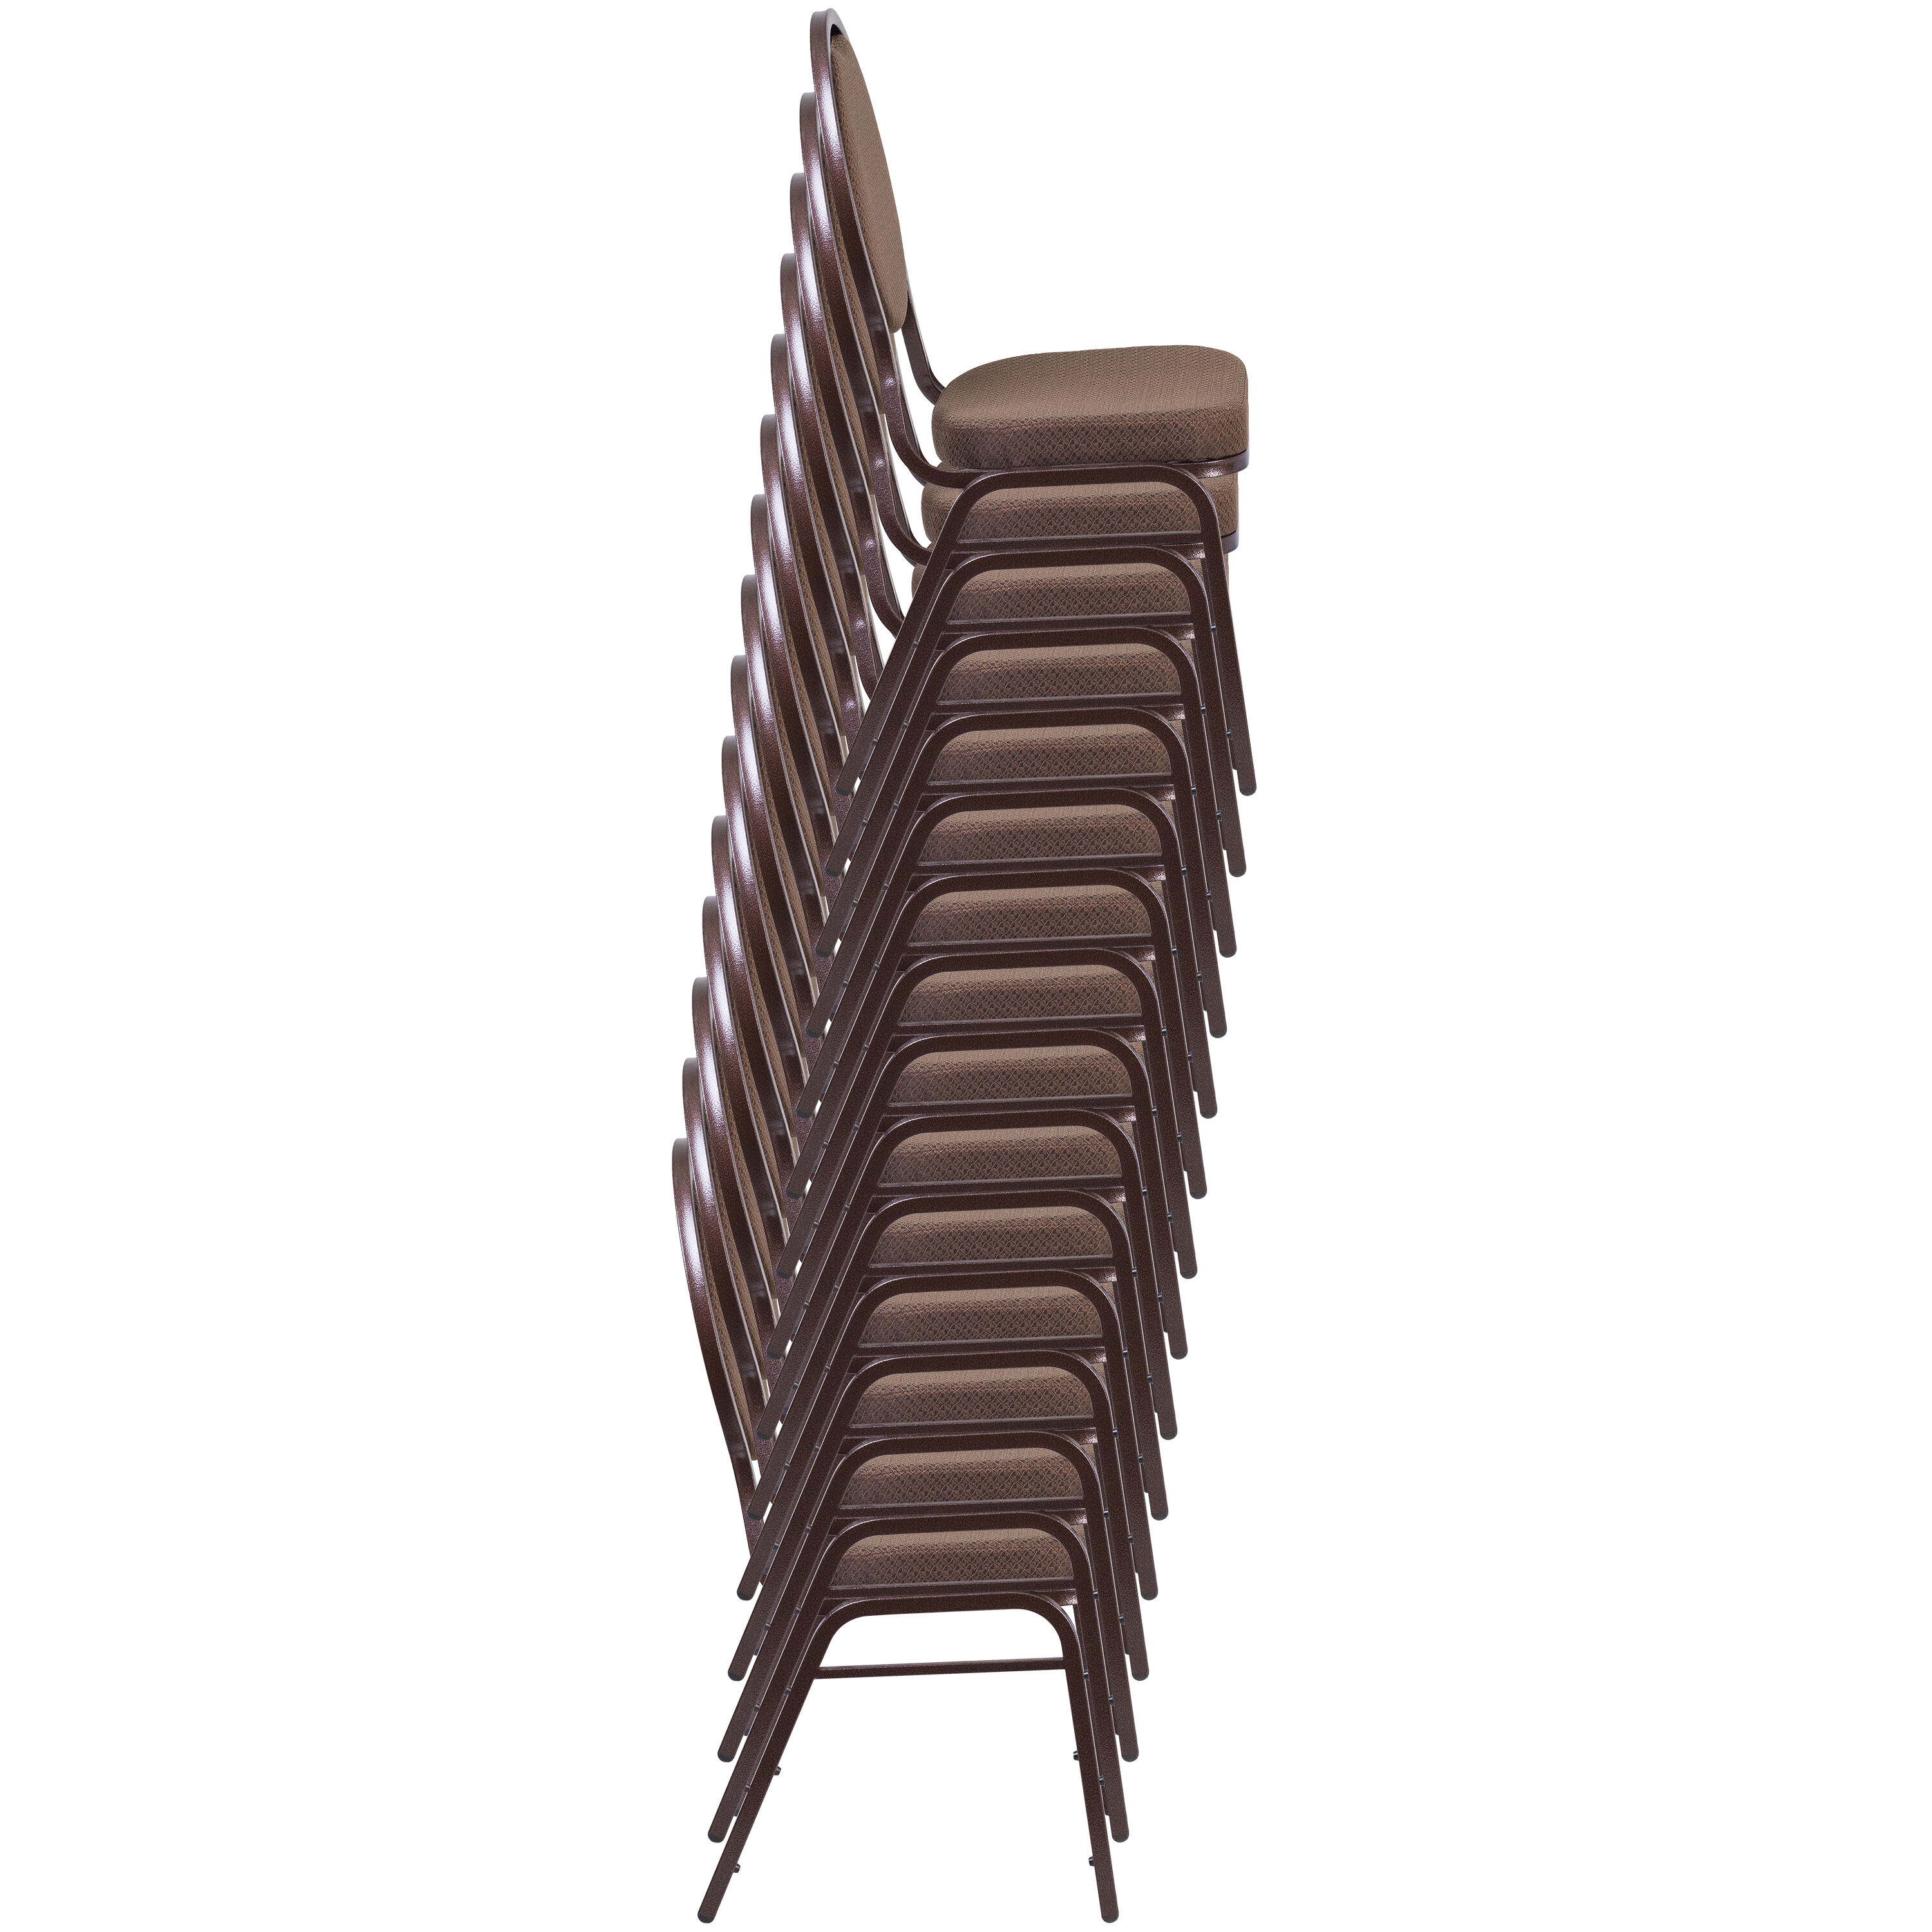 ... Our HERCULES Series Teardrop Back Stacking Banquet Chair in Burgundy Patterned Fabric - Gold Frame is ...  sc 1 st  Best Chiavari Chairs & Burgundy Fabric Banquet Chair FD-C04-ALLGOLD-2804-GG ...